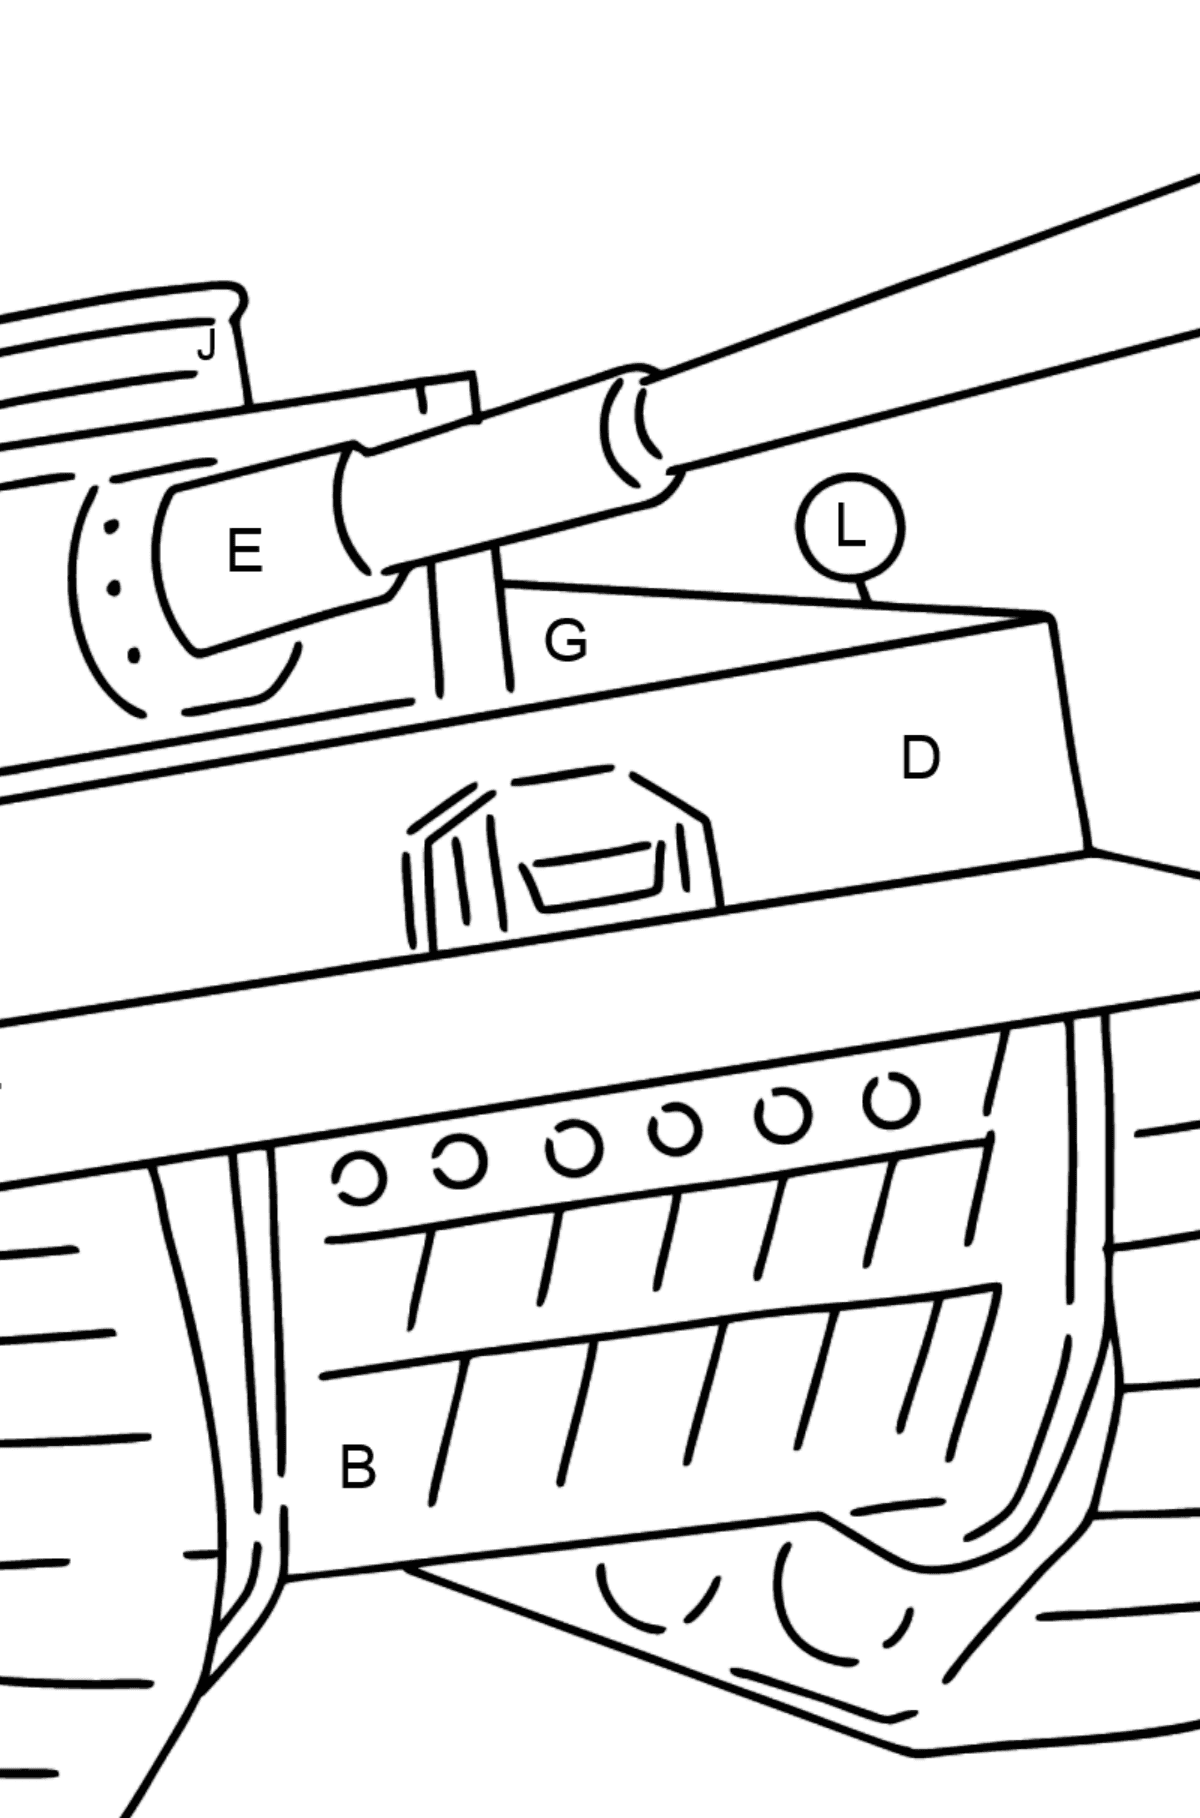 Tank Panther coloring page - Coloring by Letters for Kids